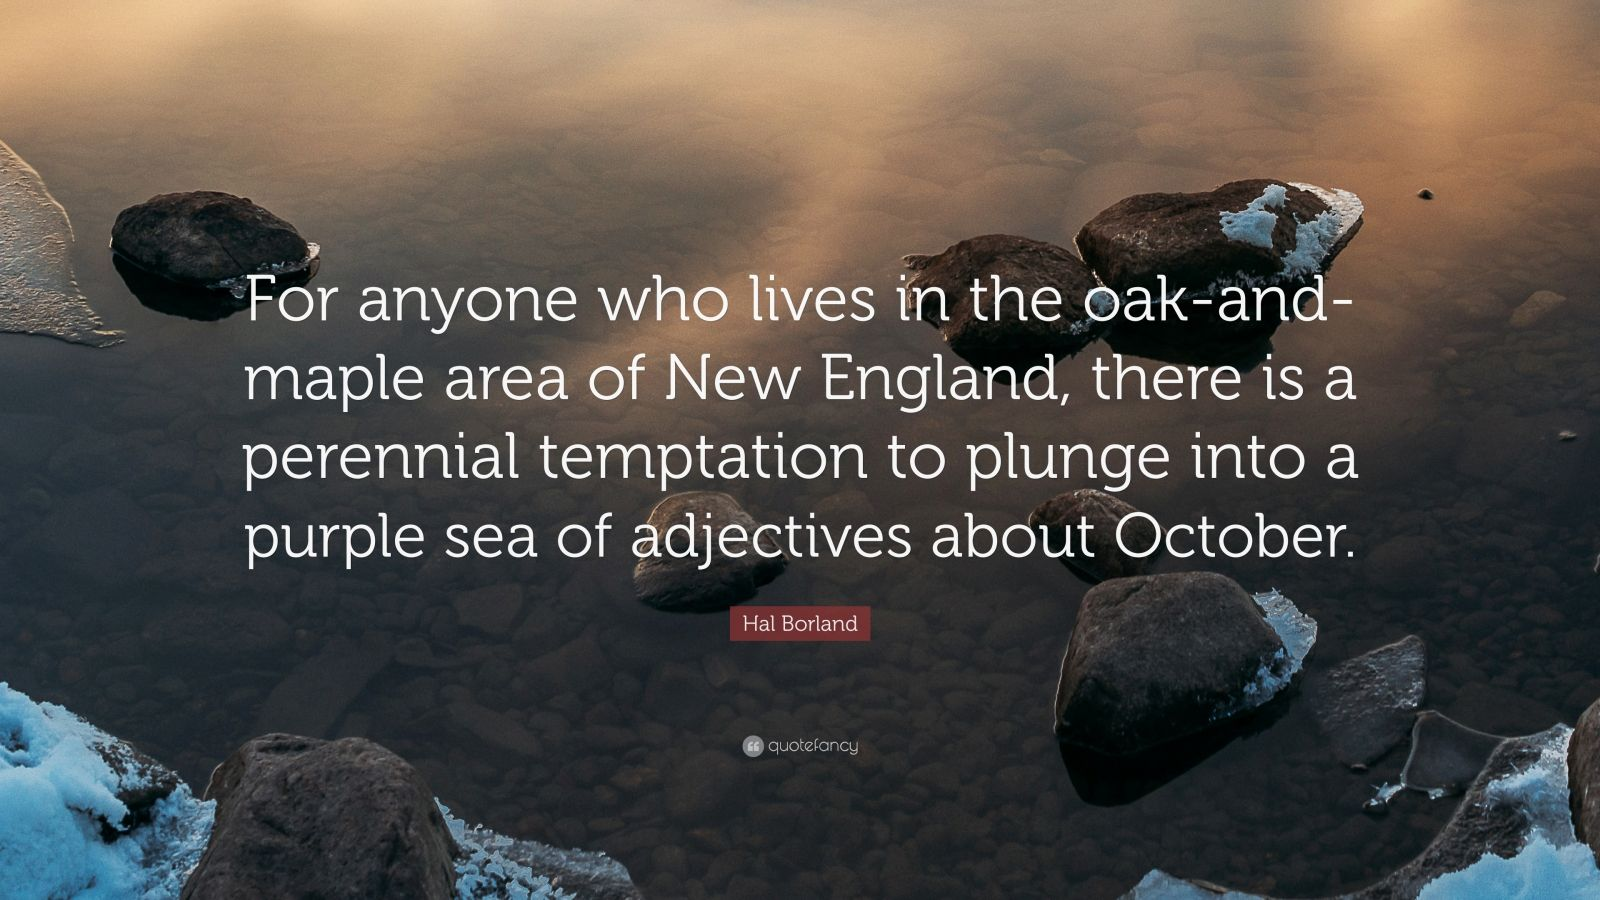 """Hal Borland Quote: """"For anyone who lives in the oak-and-maple area of New England, there is a perennial temptation to plunge into a purple sea of adjectives about October."""""""